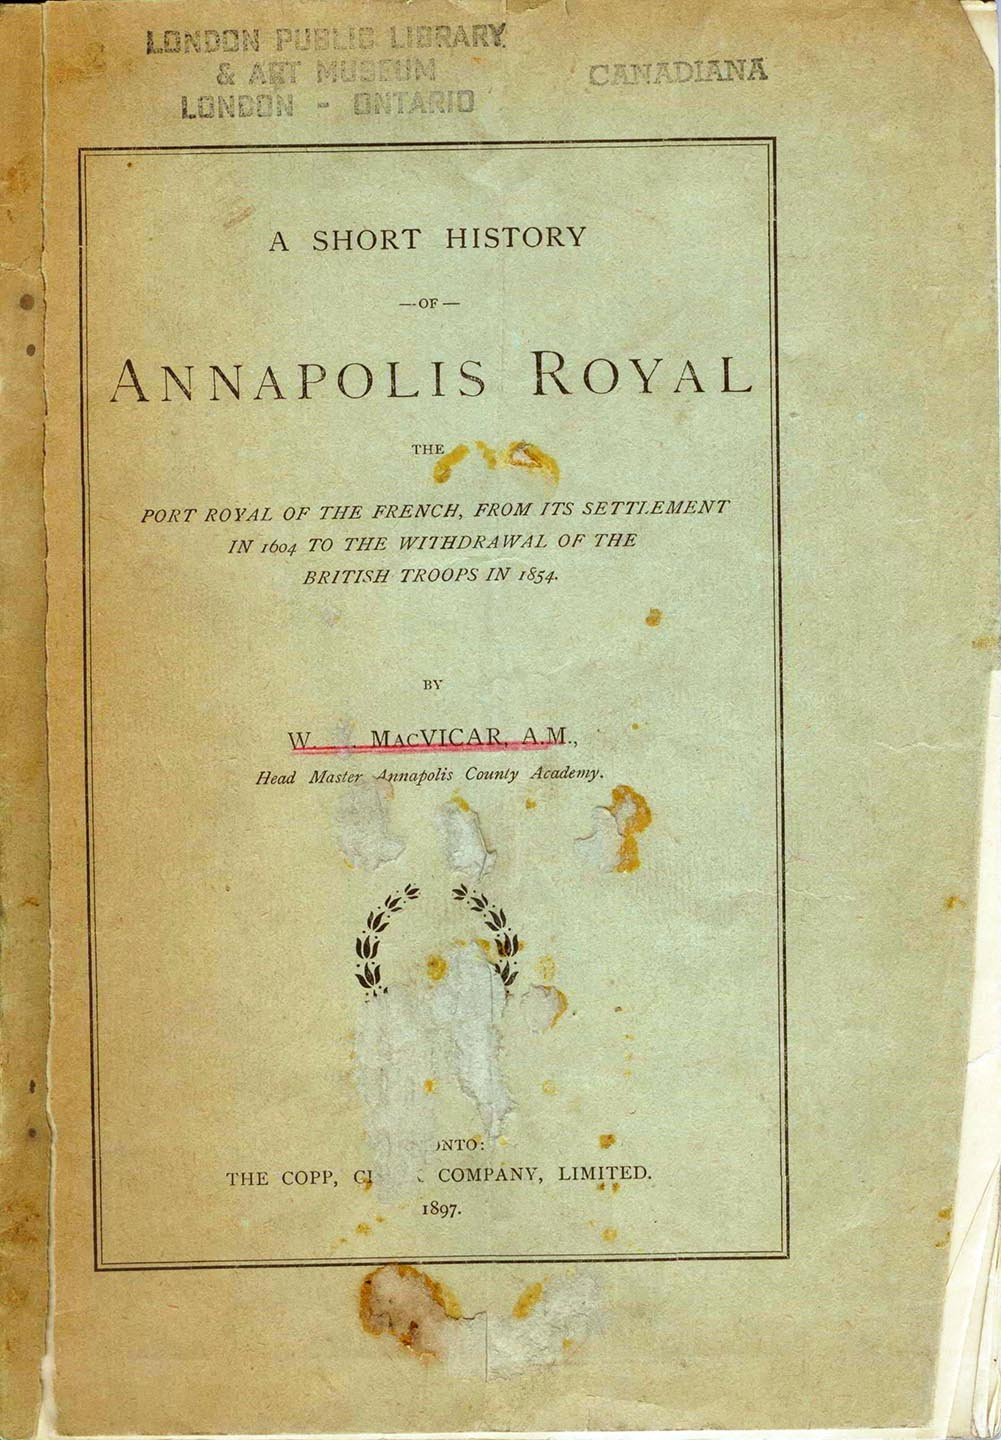 A Short History of Annapolis Royal